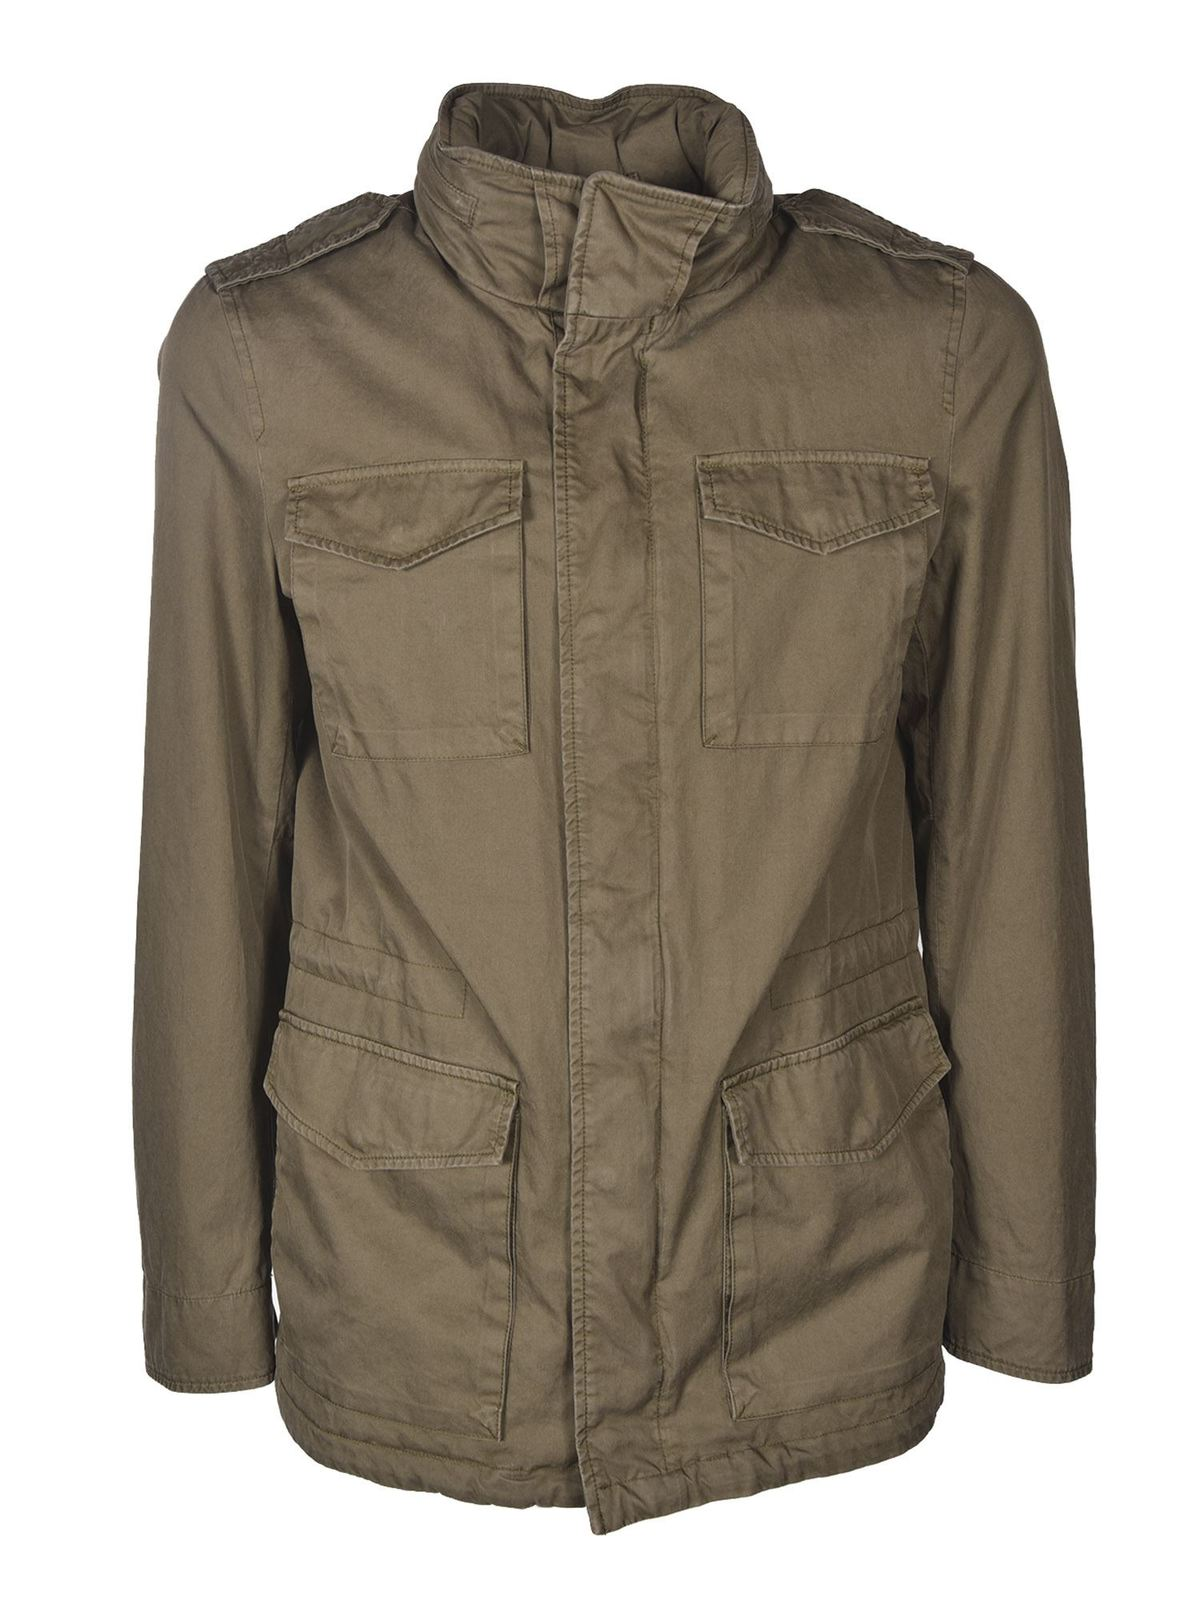 Herno FIELD JACKET IN MILITARY GREEN